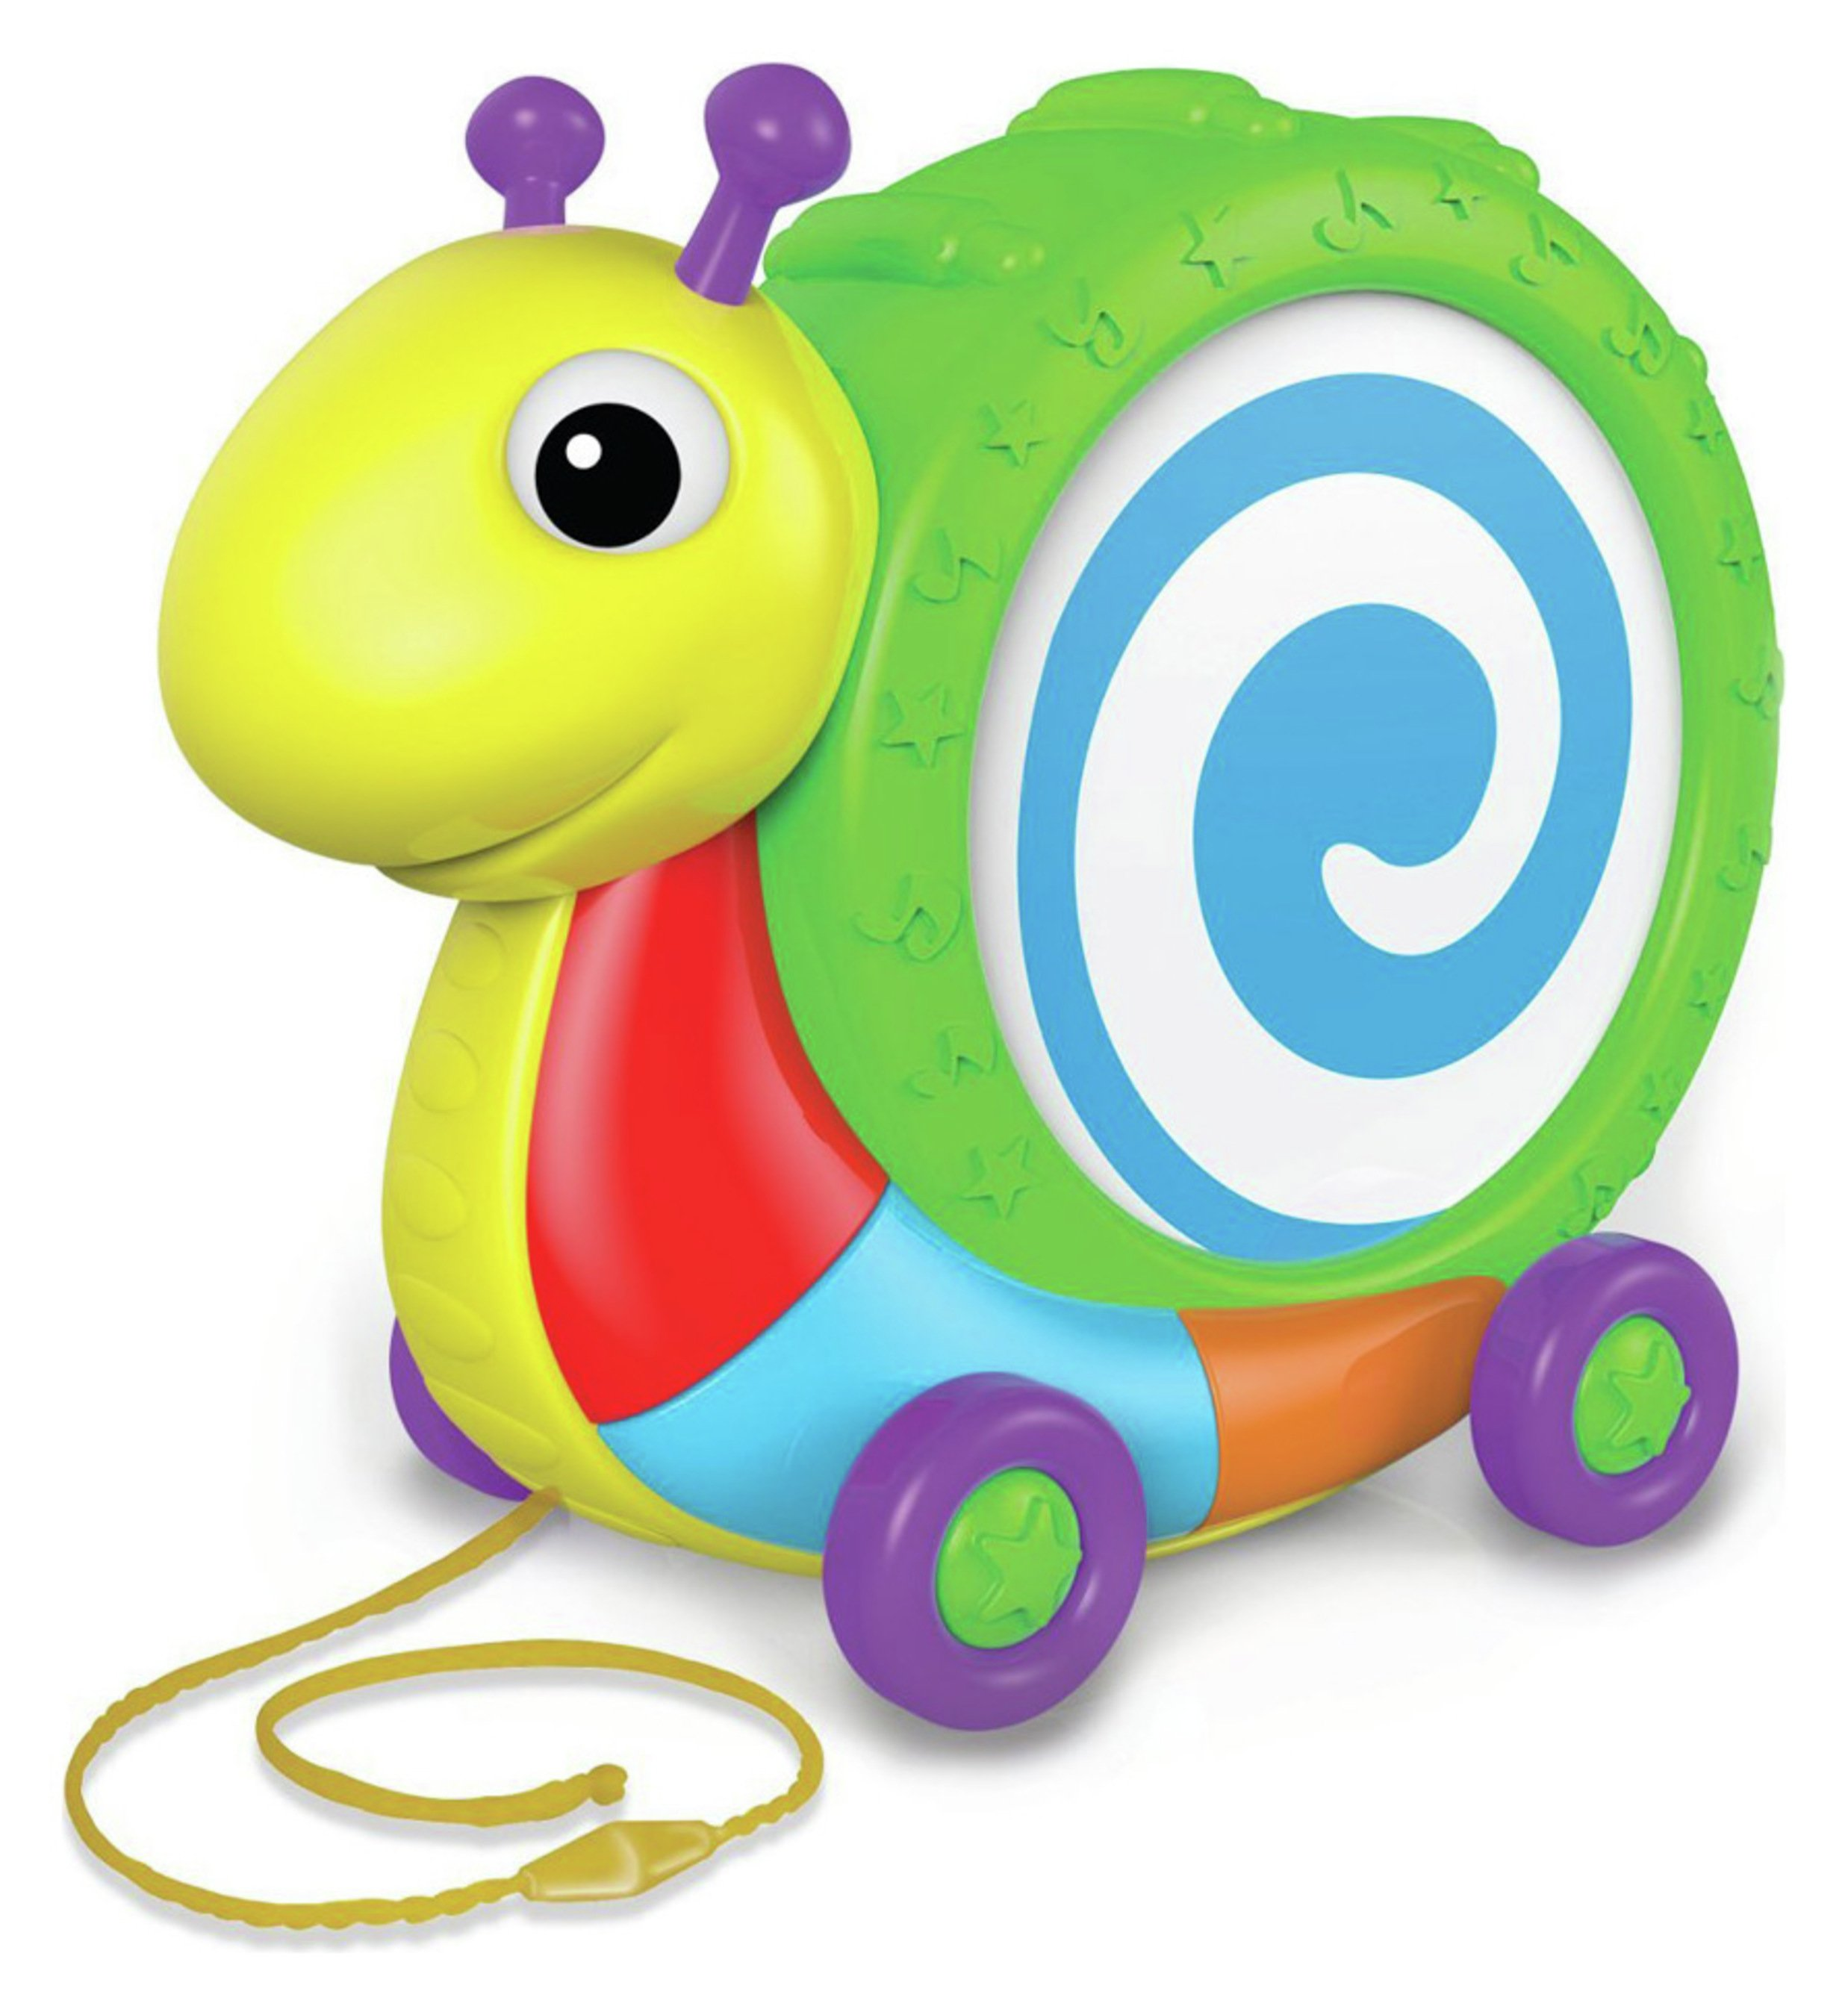 Image of Pull Along Snail Drum Playset.